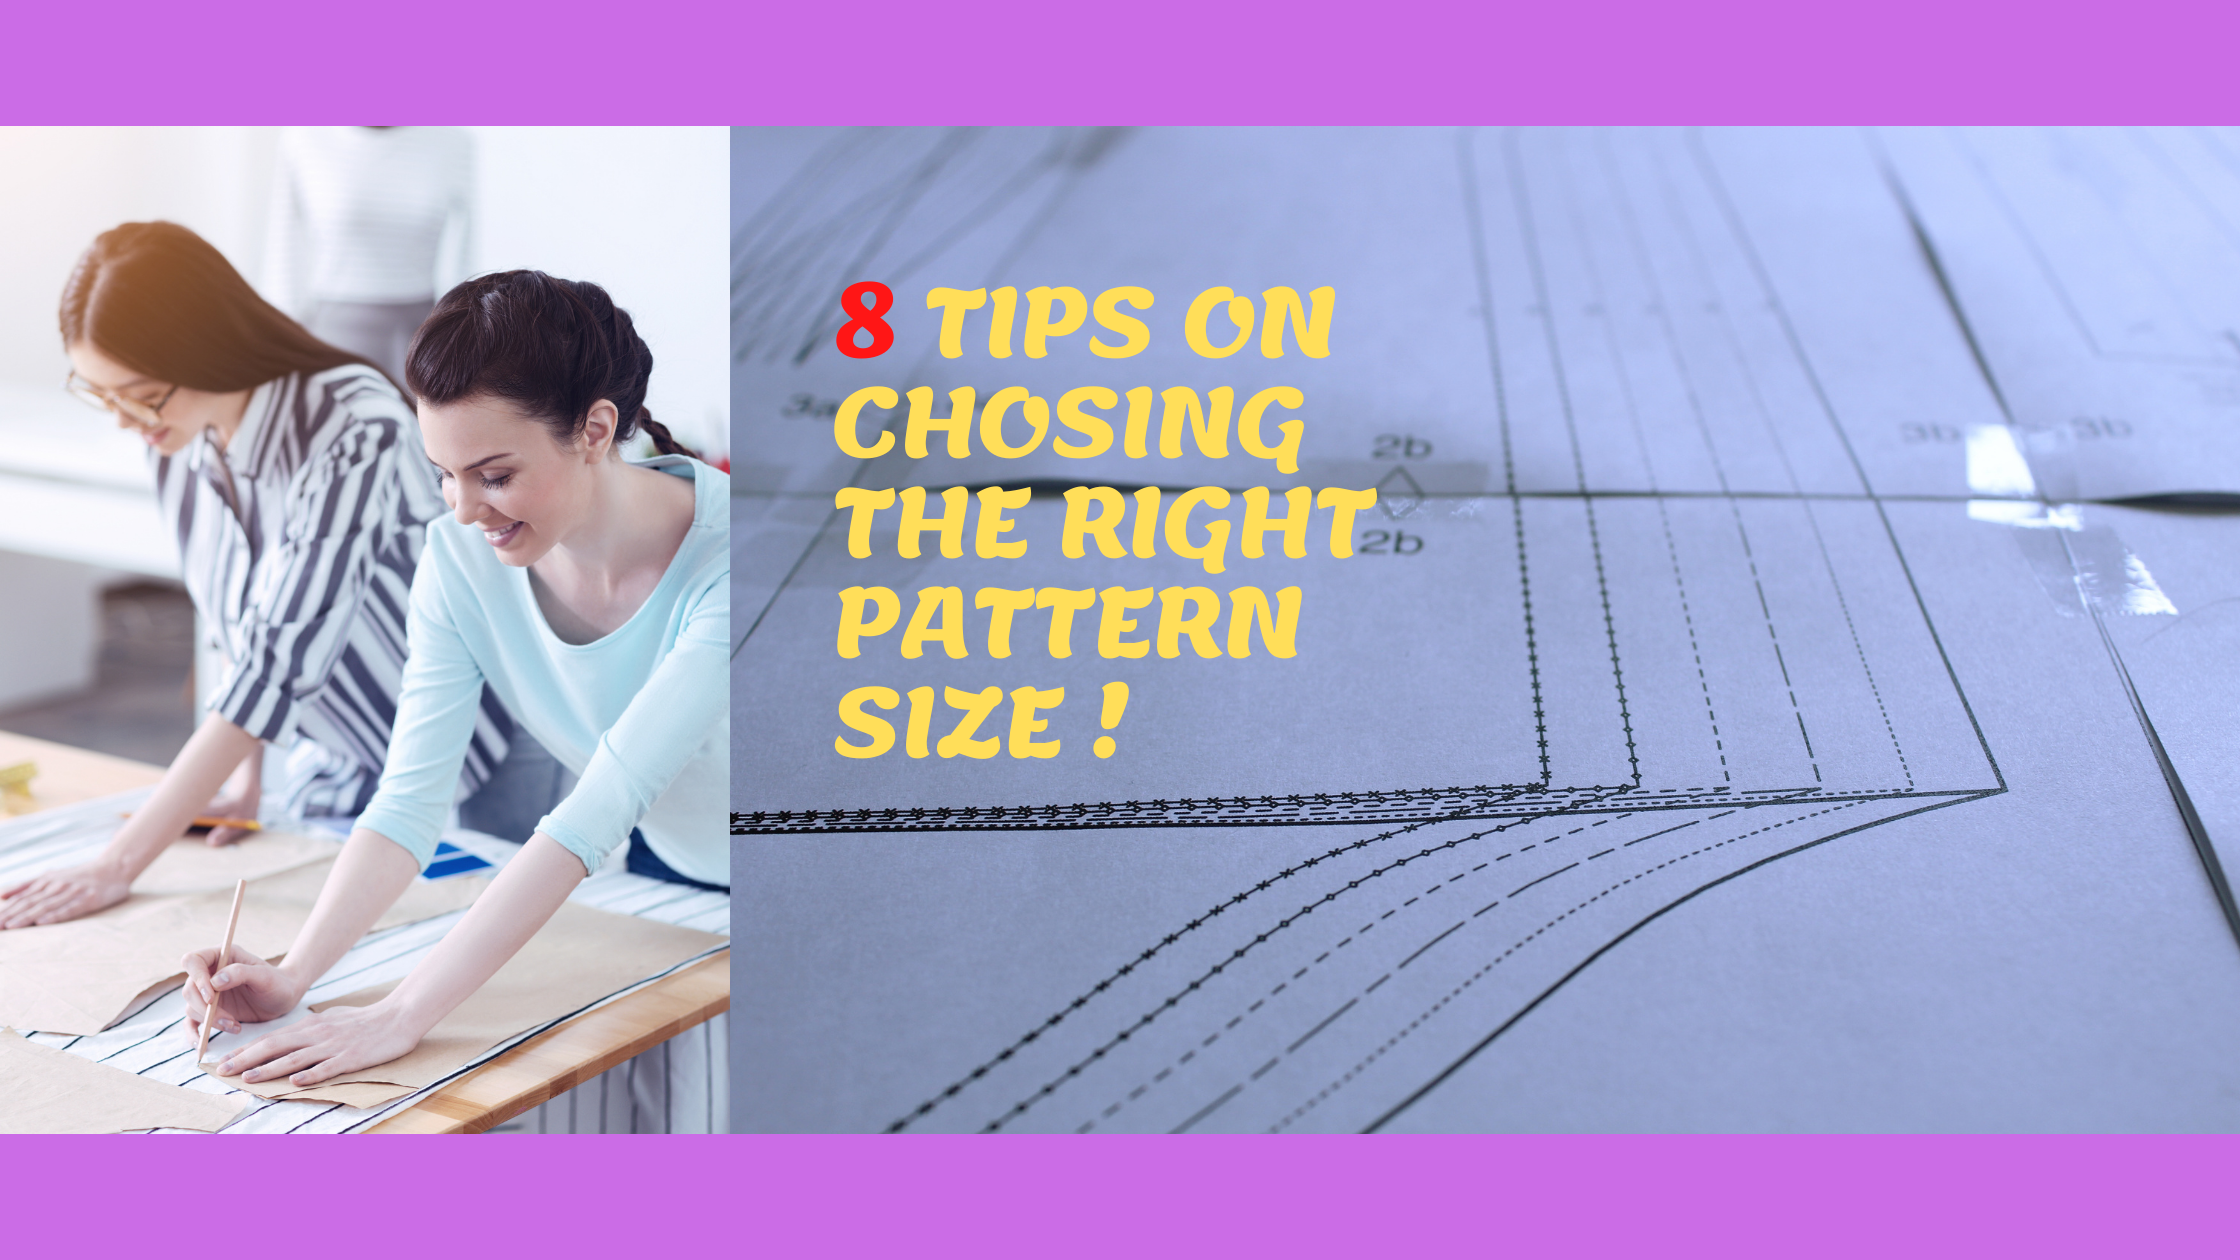 8 TIPS ON CHOOSING THE RIGHT PATTERN SIZE.